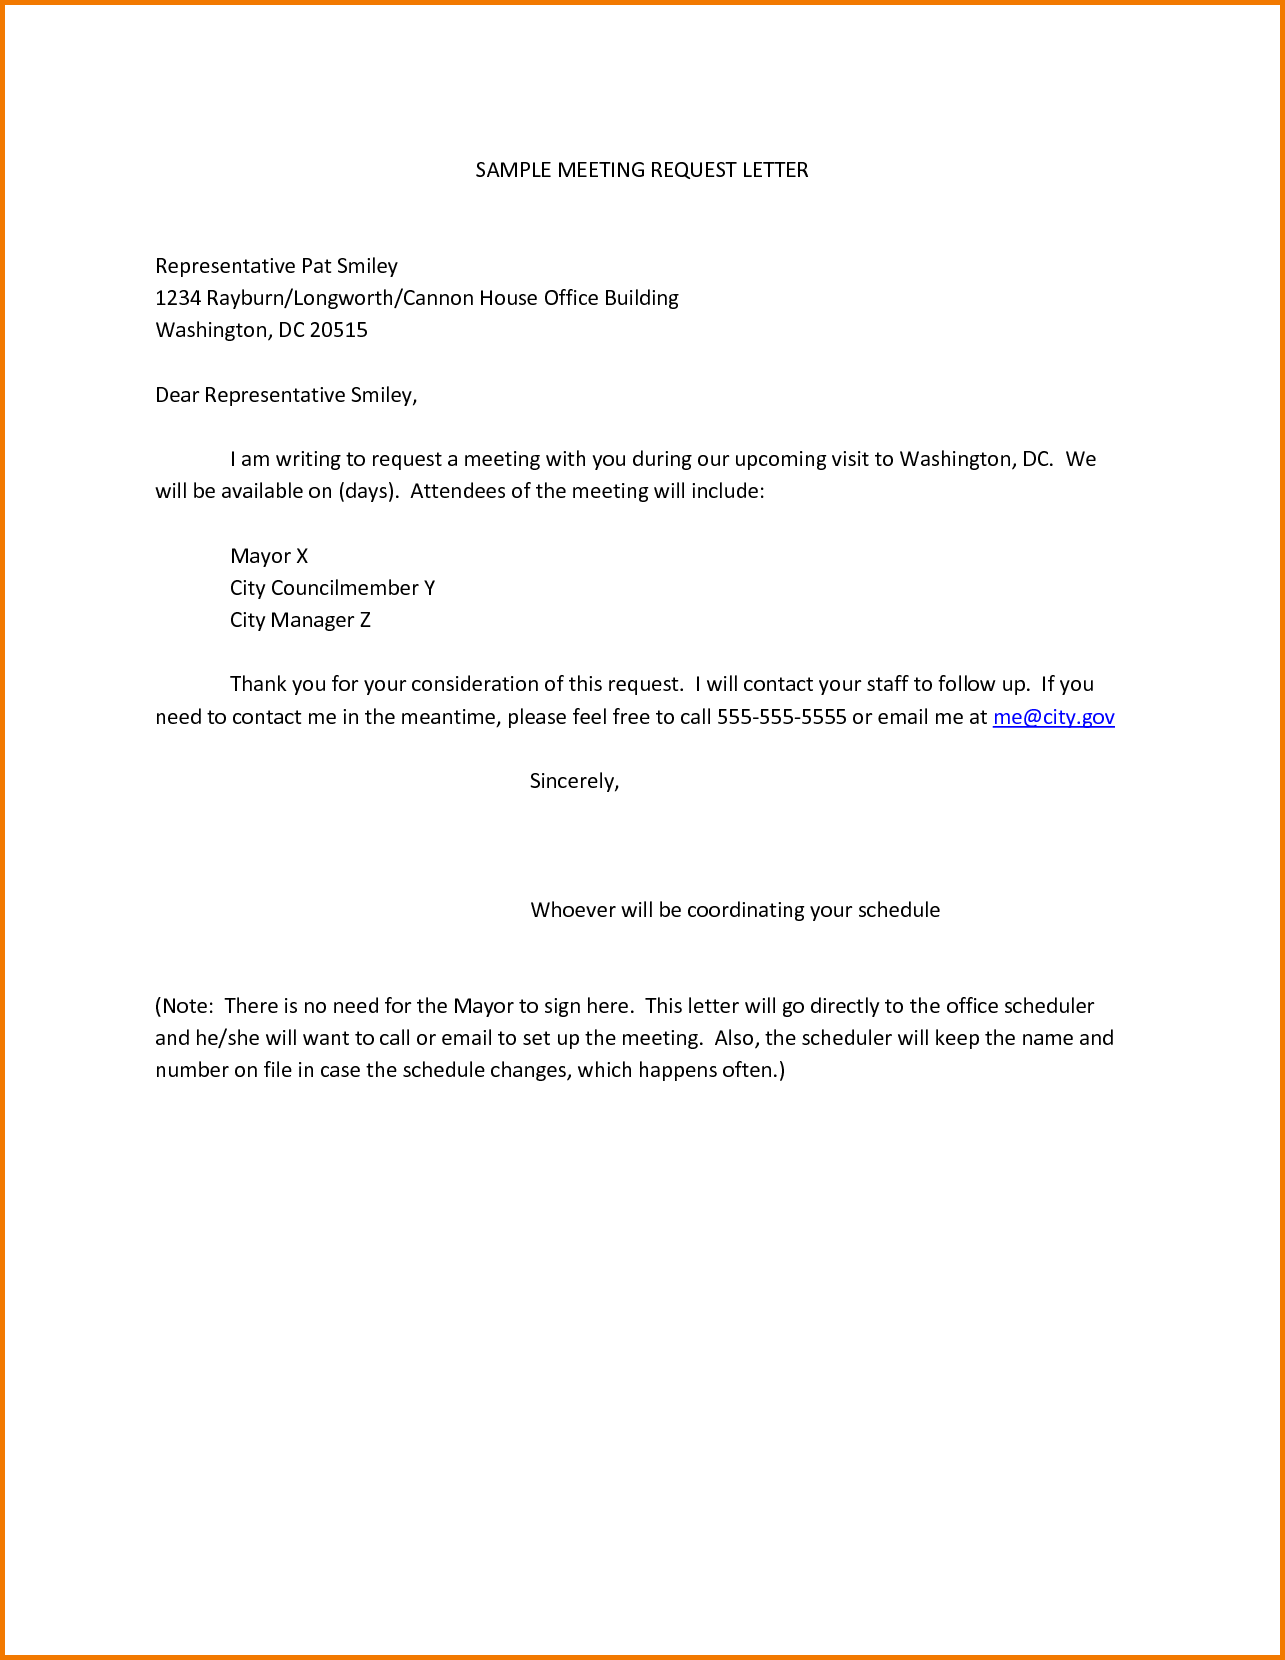 Perfect SAMPLE MEETING REQUEST LETTER Representative Pat Smiley Rayburn .